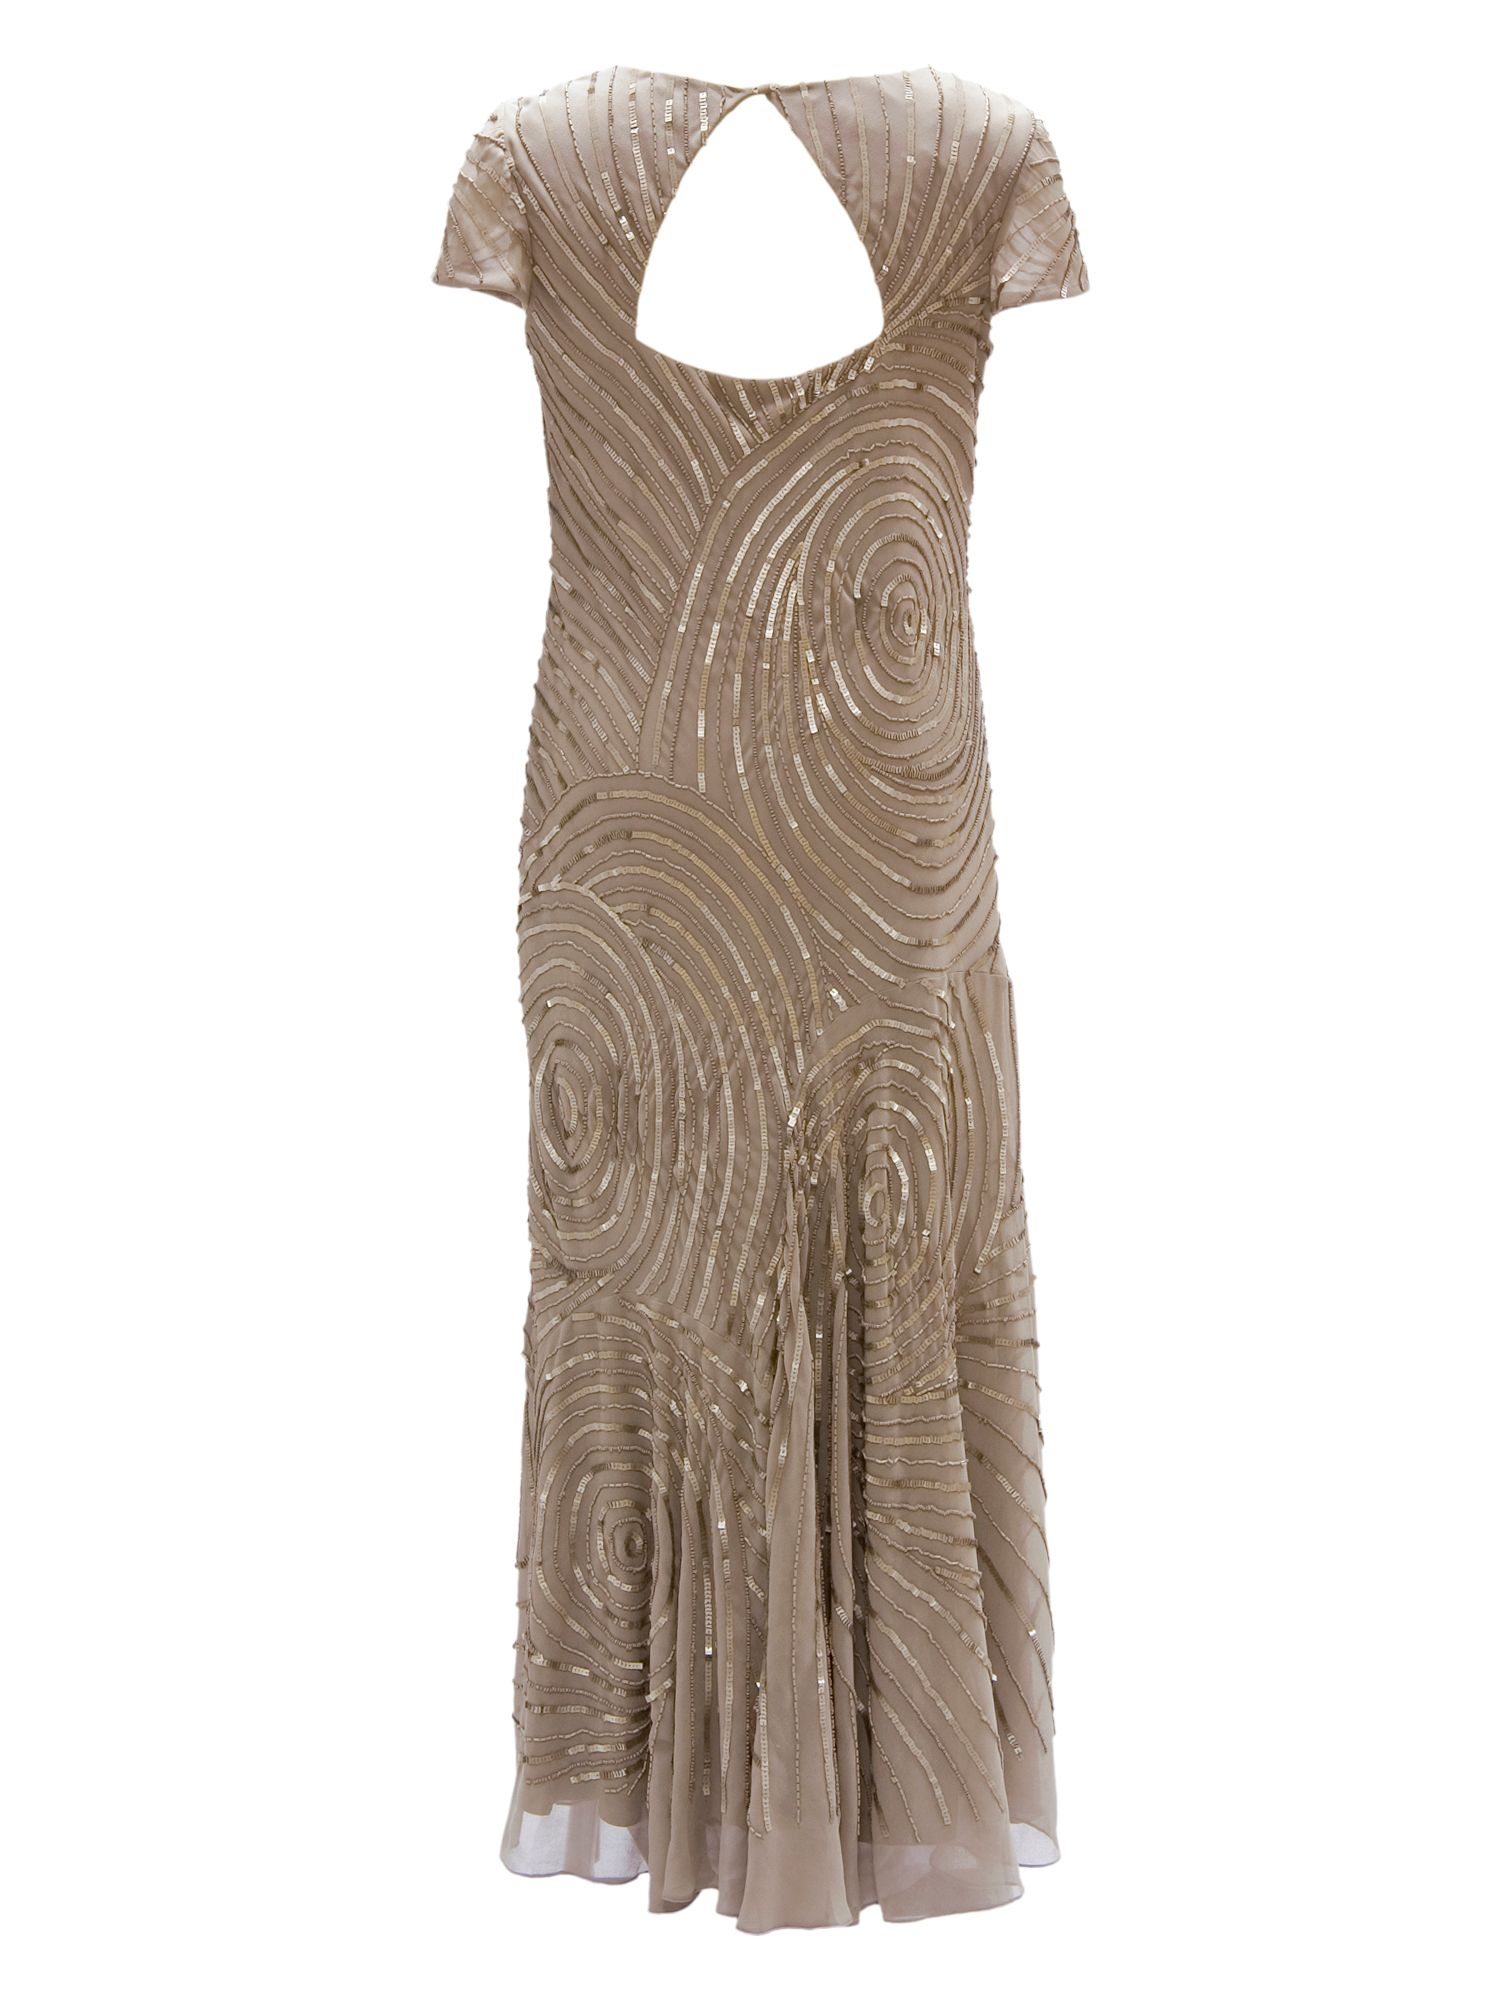 Swirl beaded dress